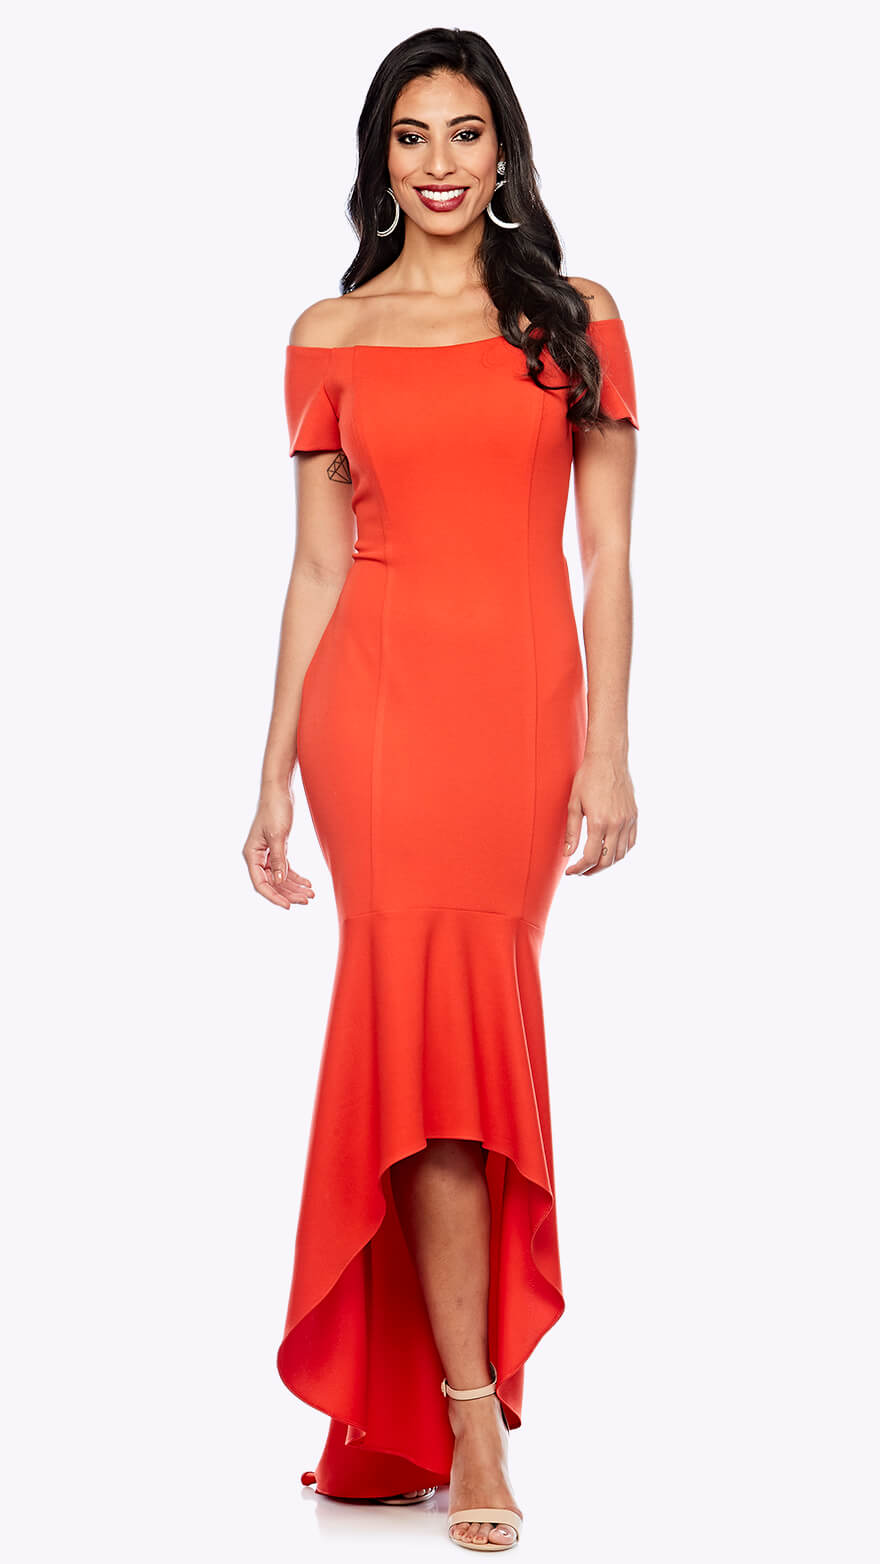 Z0219 Off the shoulder gown with high to low fishtail hemline